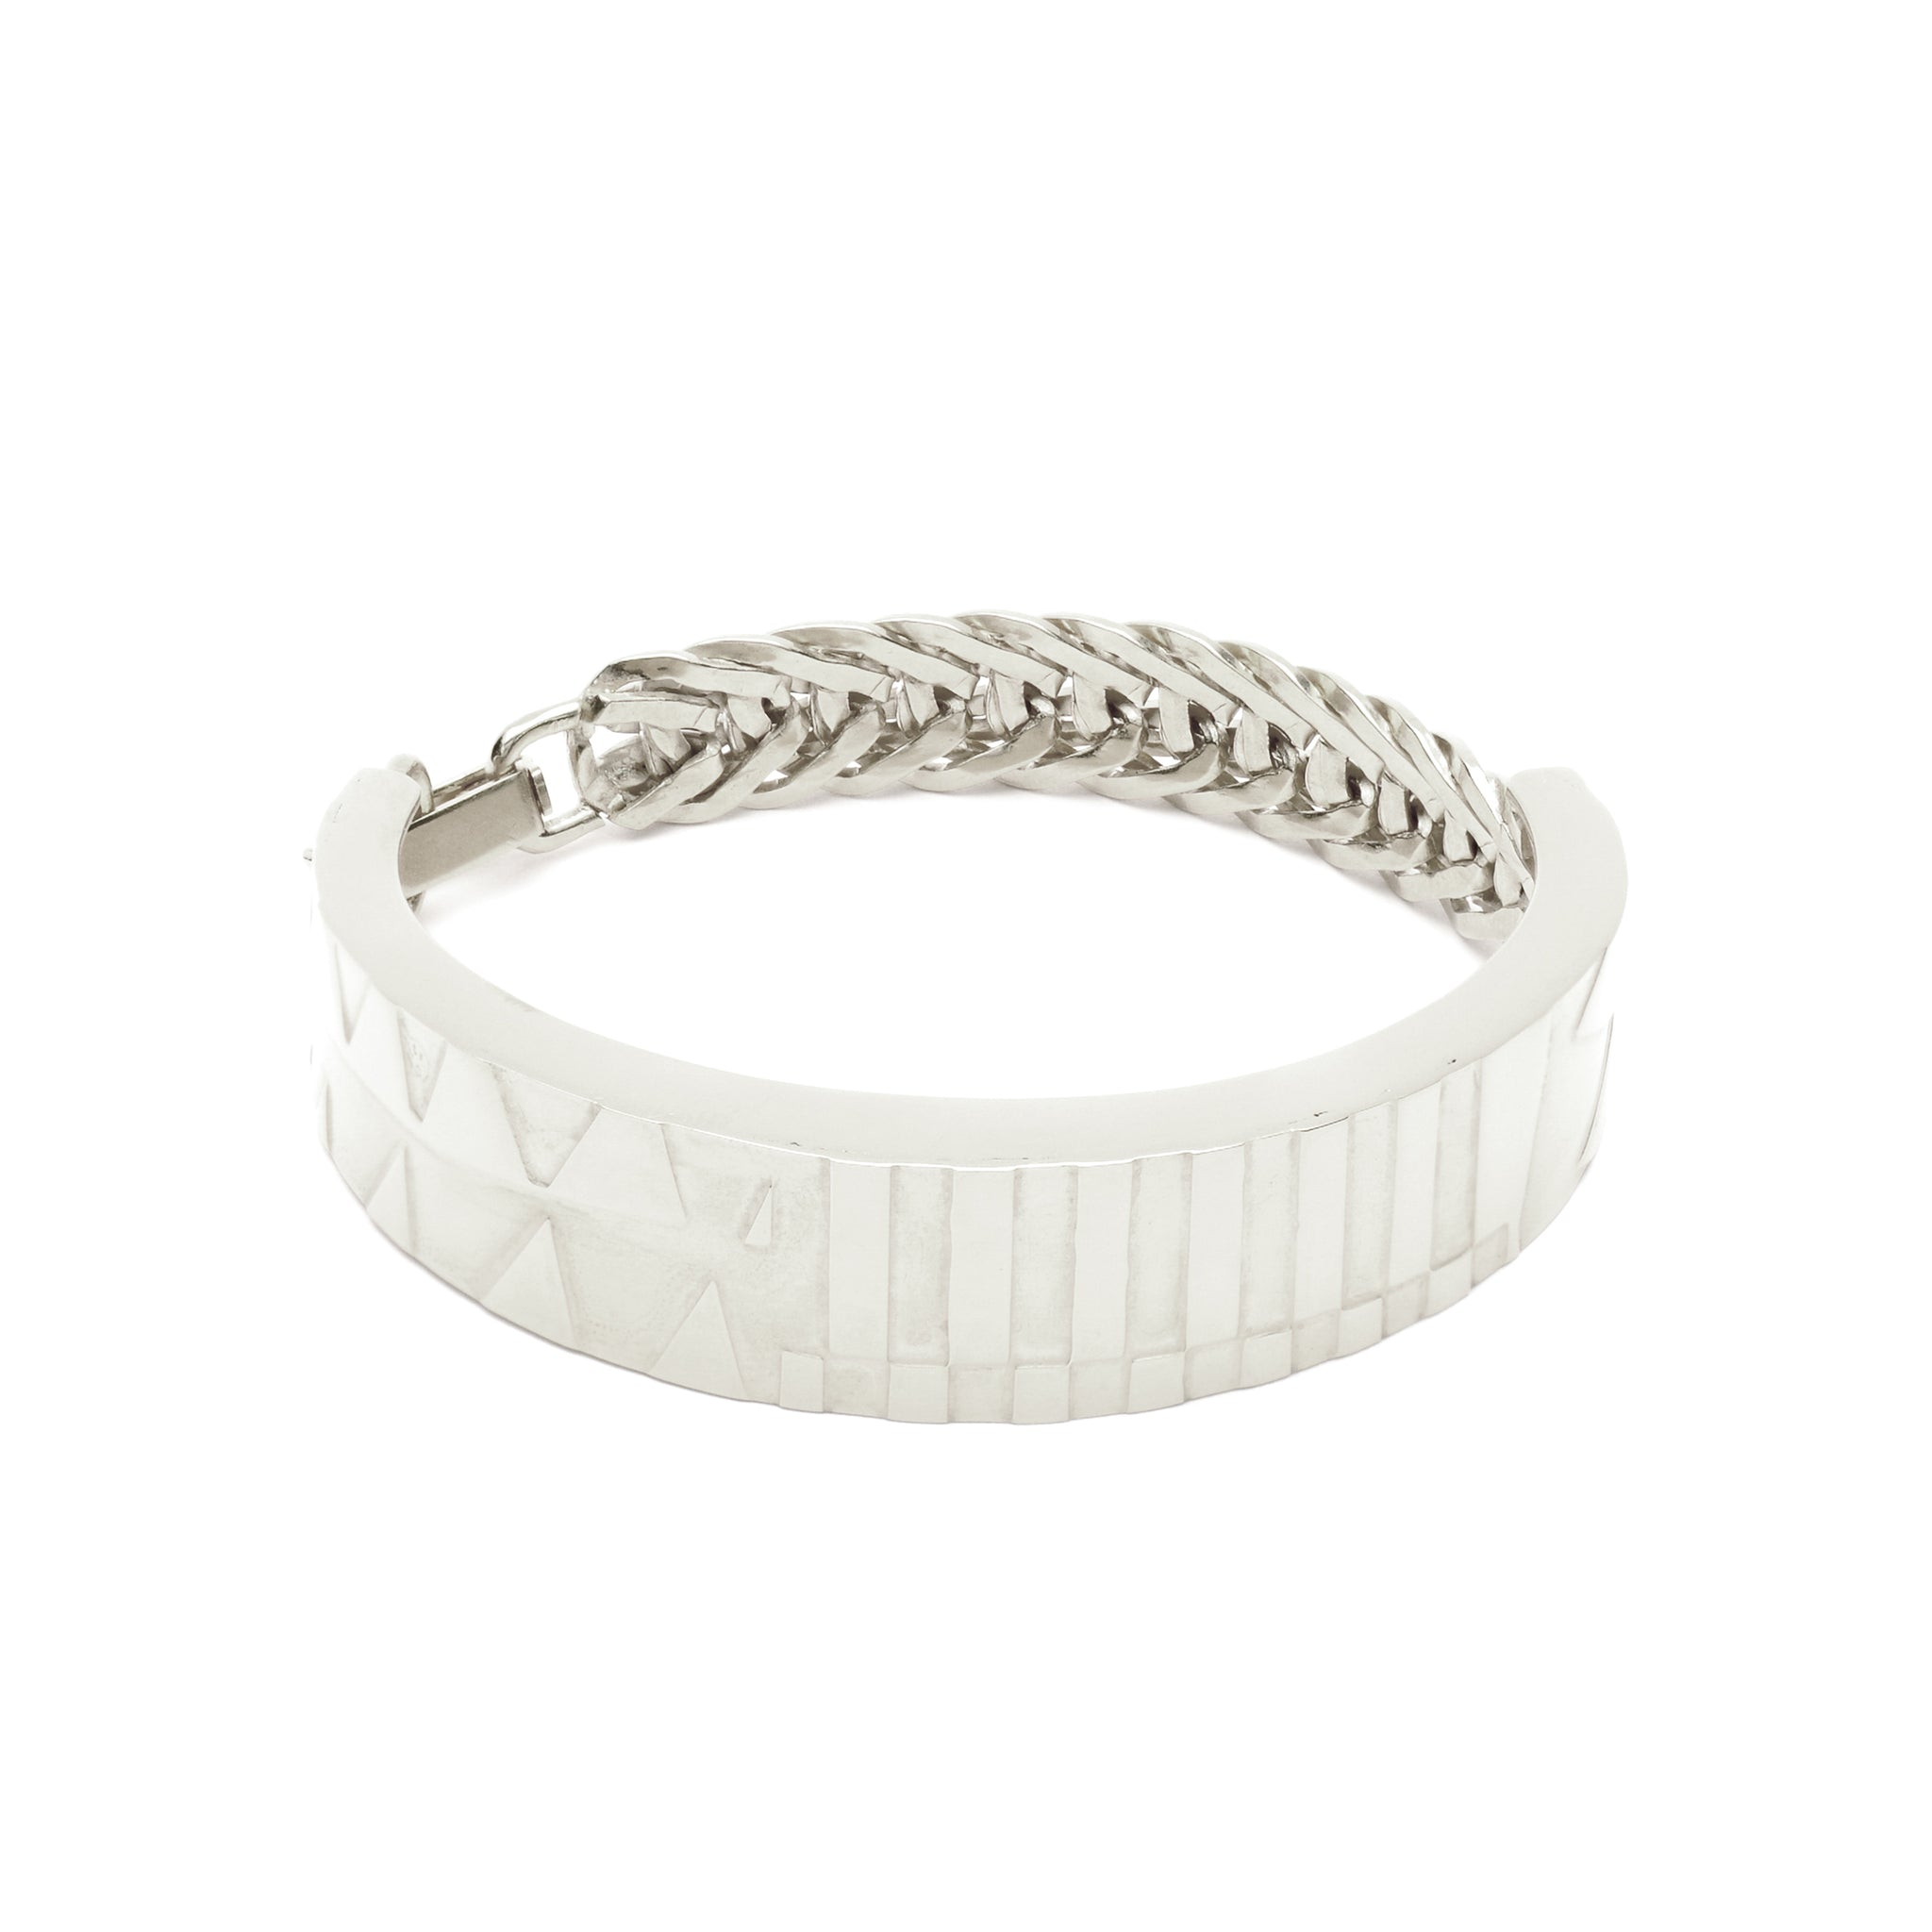 Etched Statement Bracelet with Chain and clasp